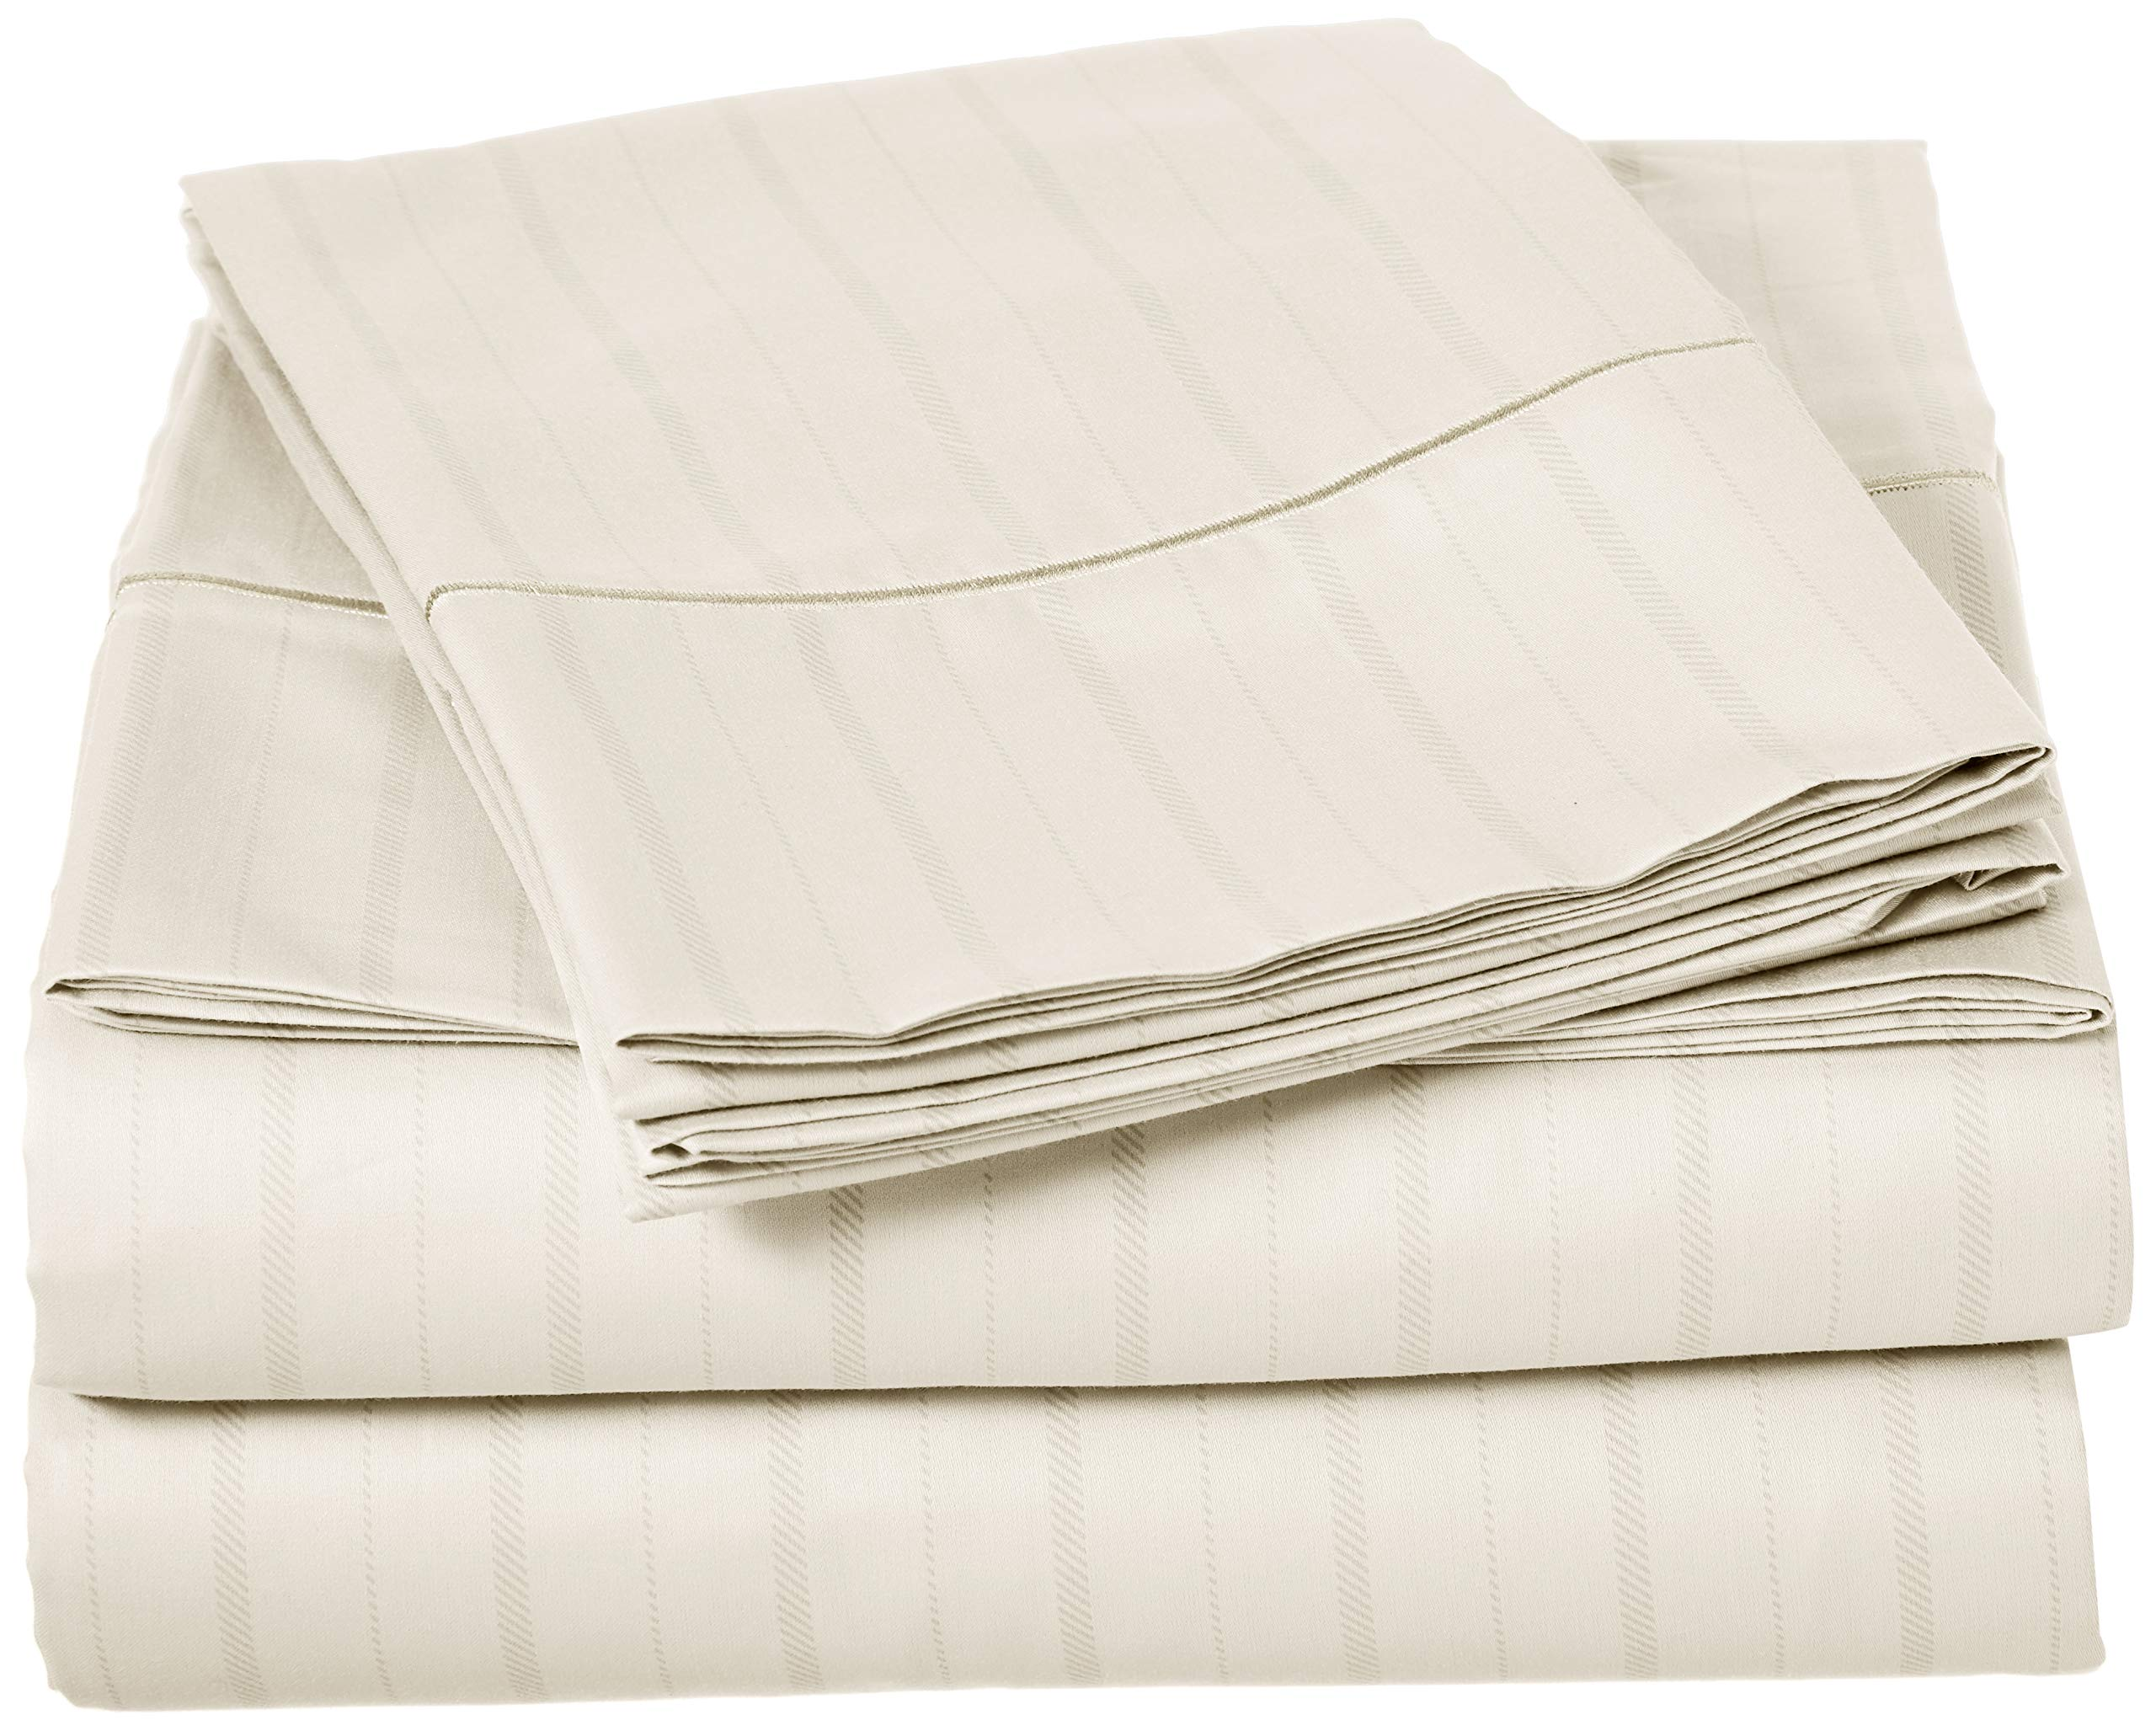 Charisma 310 Thread Count Classic Stripe Cotton Sateen Queen Sheet Set in Almond Milk by Charisma